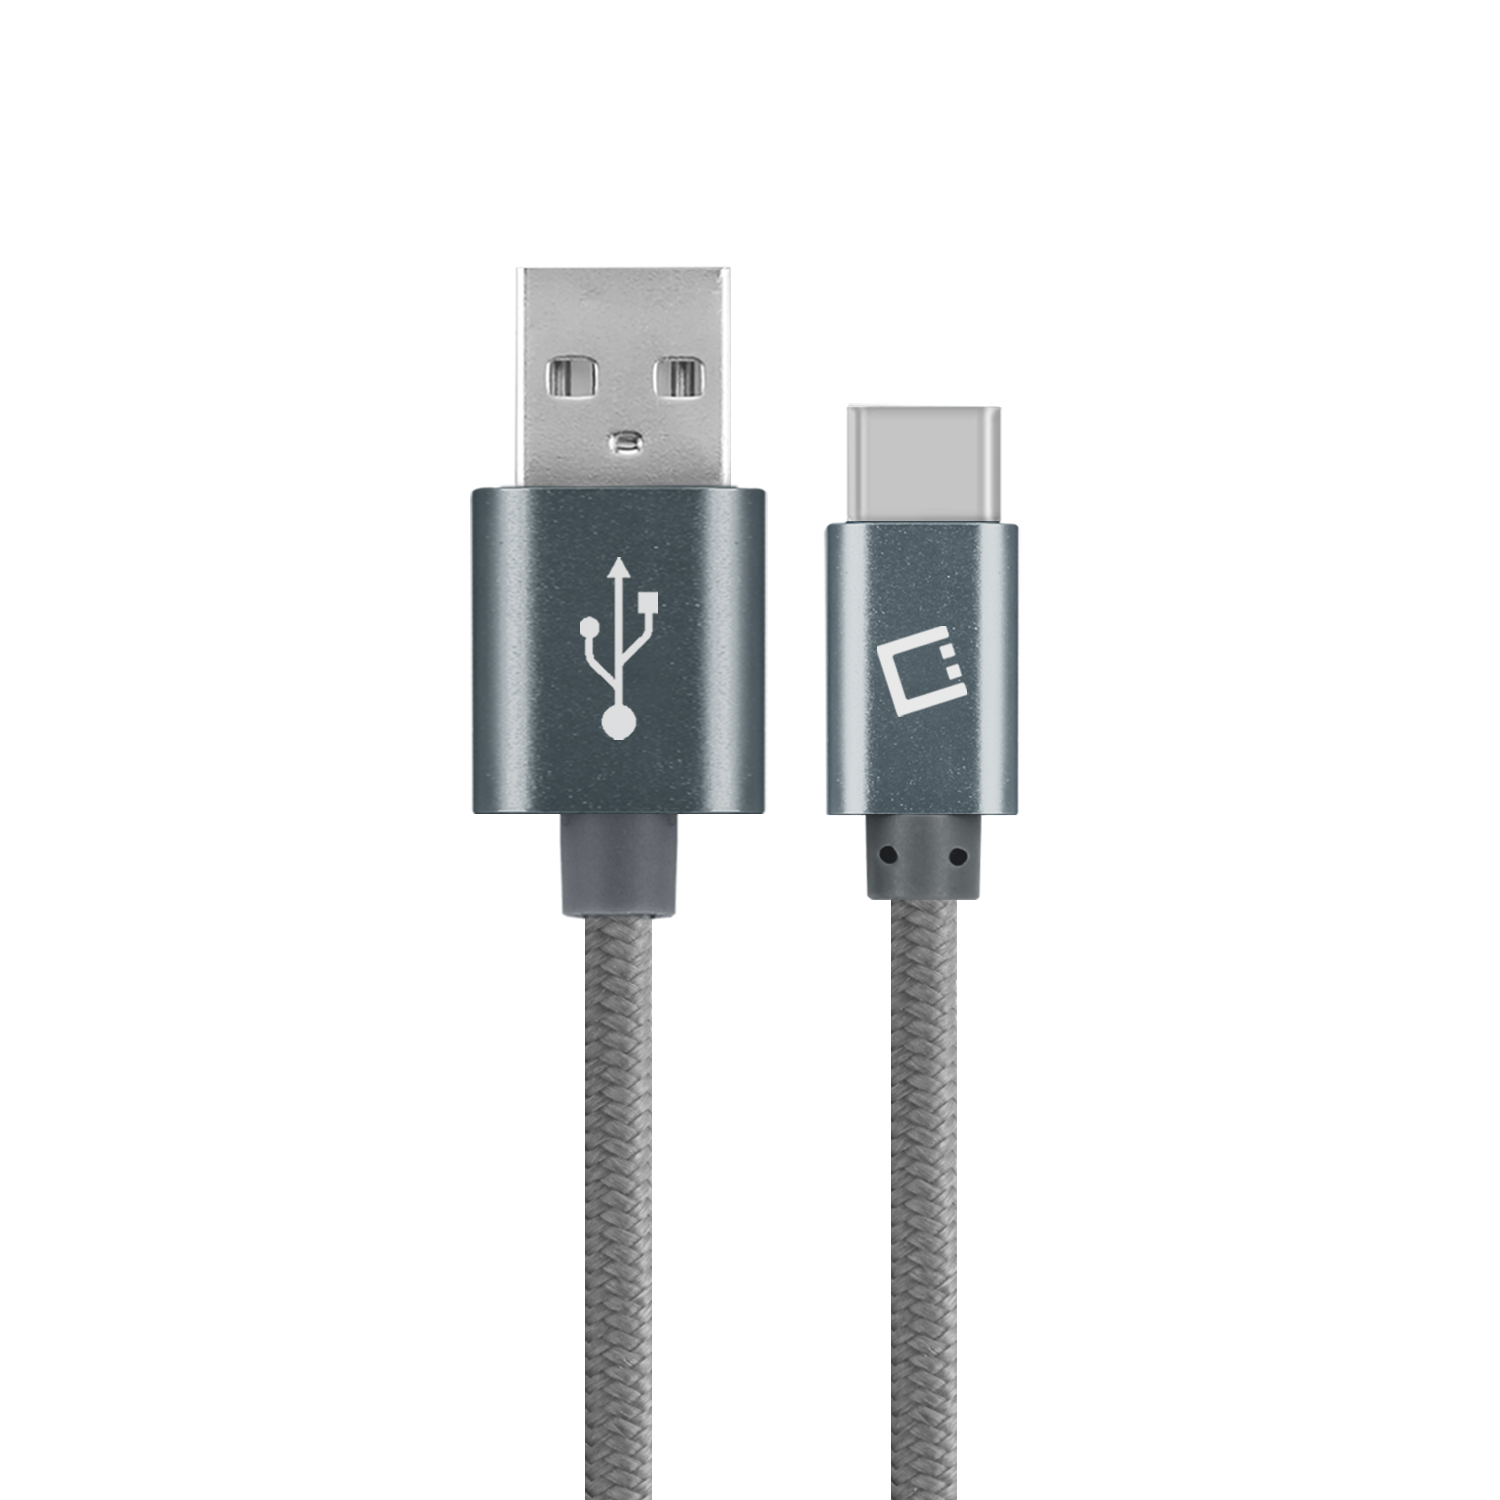 LG Stylo 4 USB Type-C To Type-A Braided Data Power Cable Grey 10ft Braided